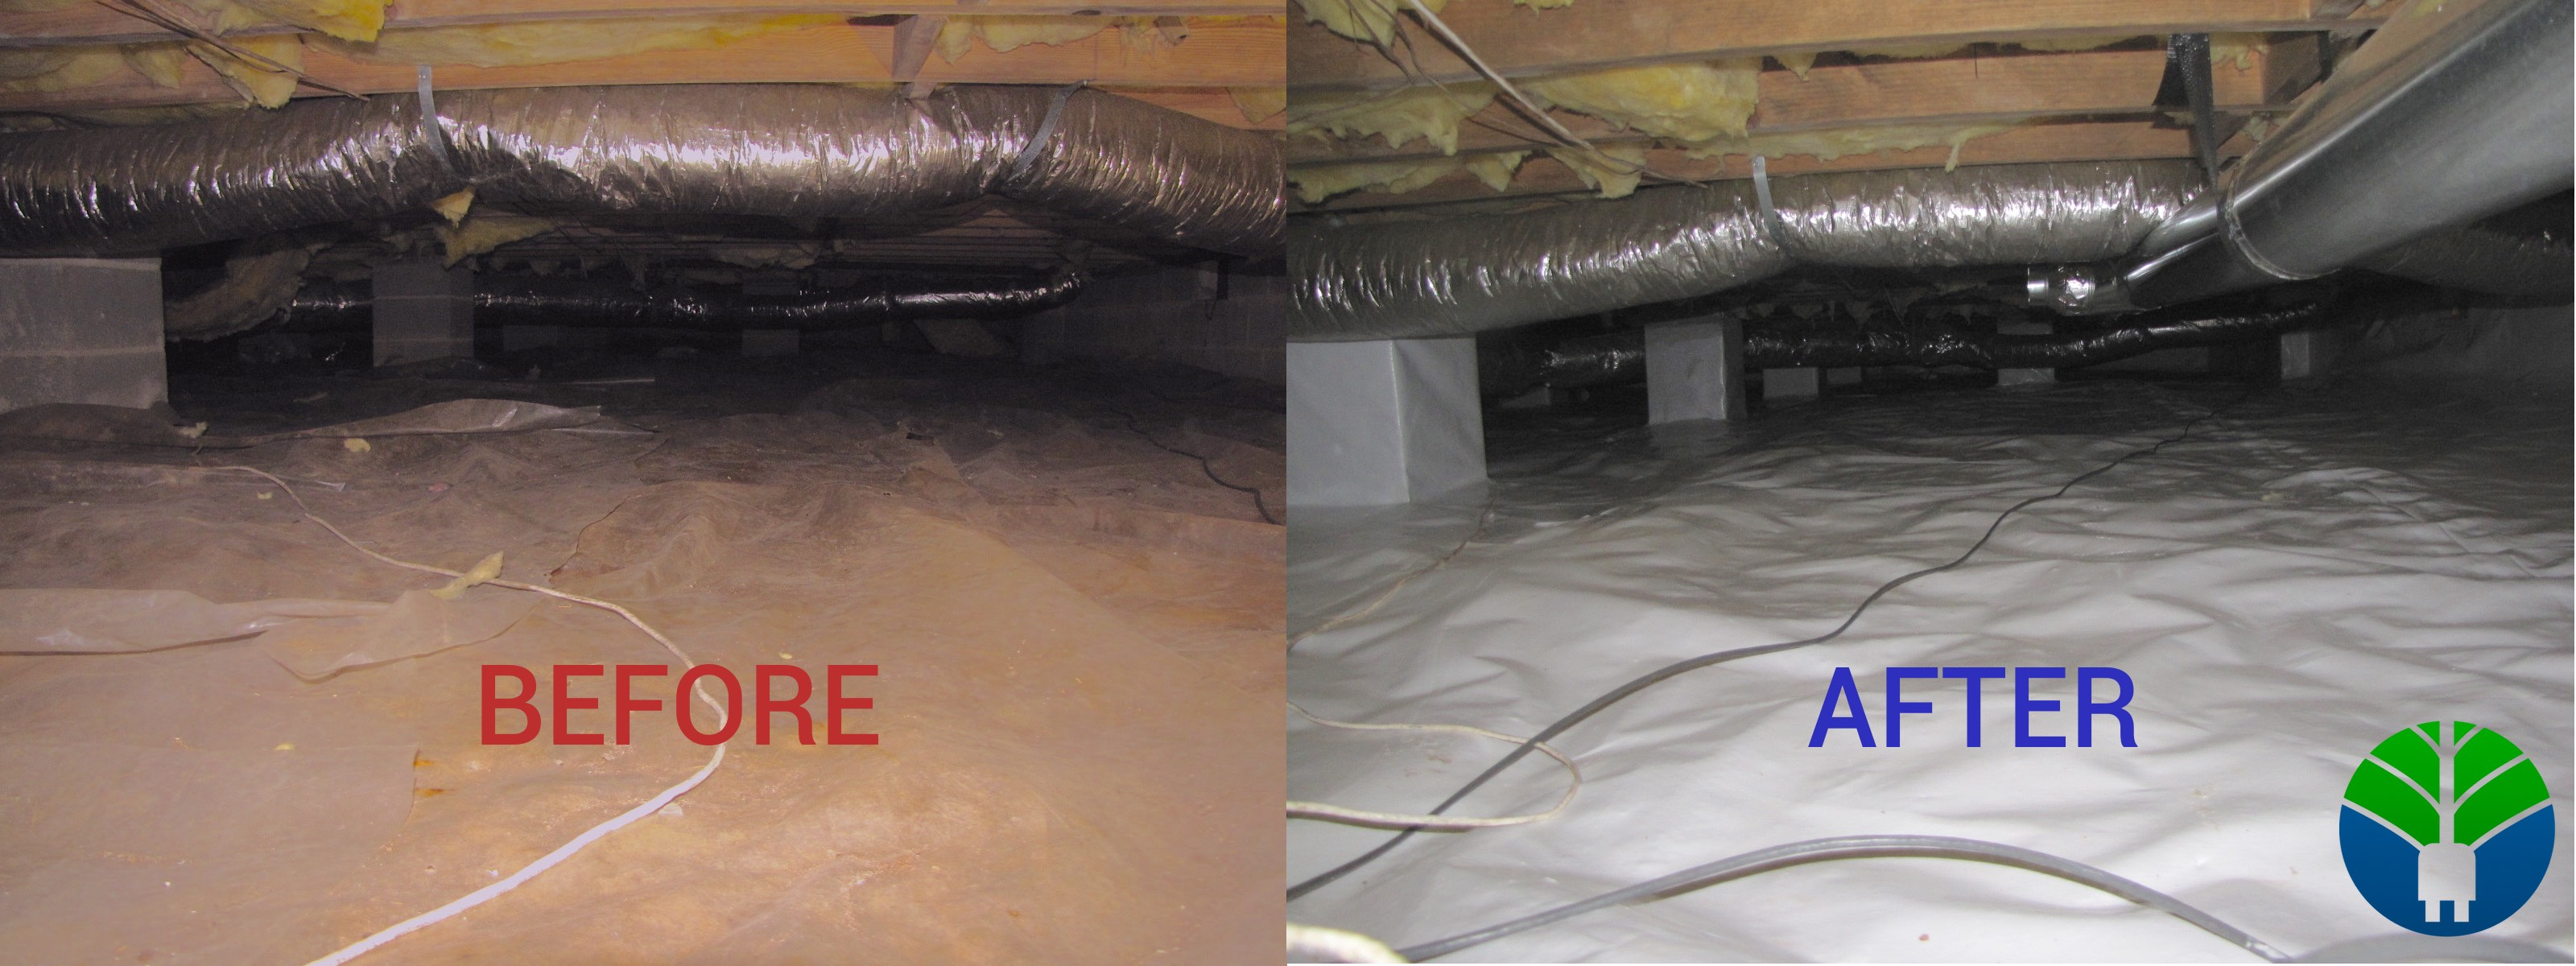 How To Install Ductwork In Crawl E Mycoffeepot Org